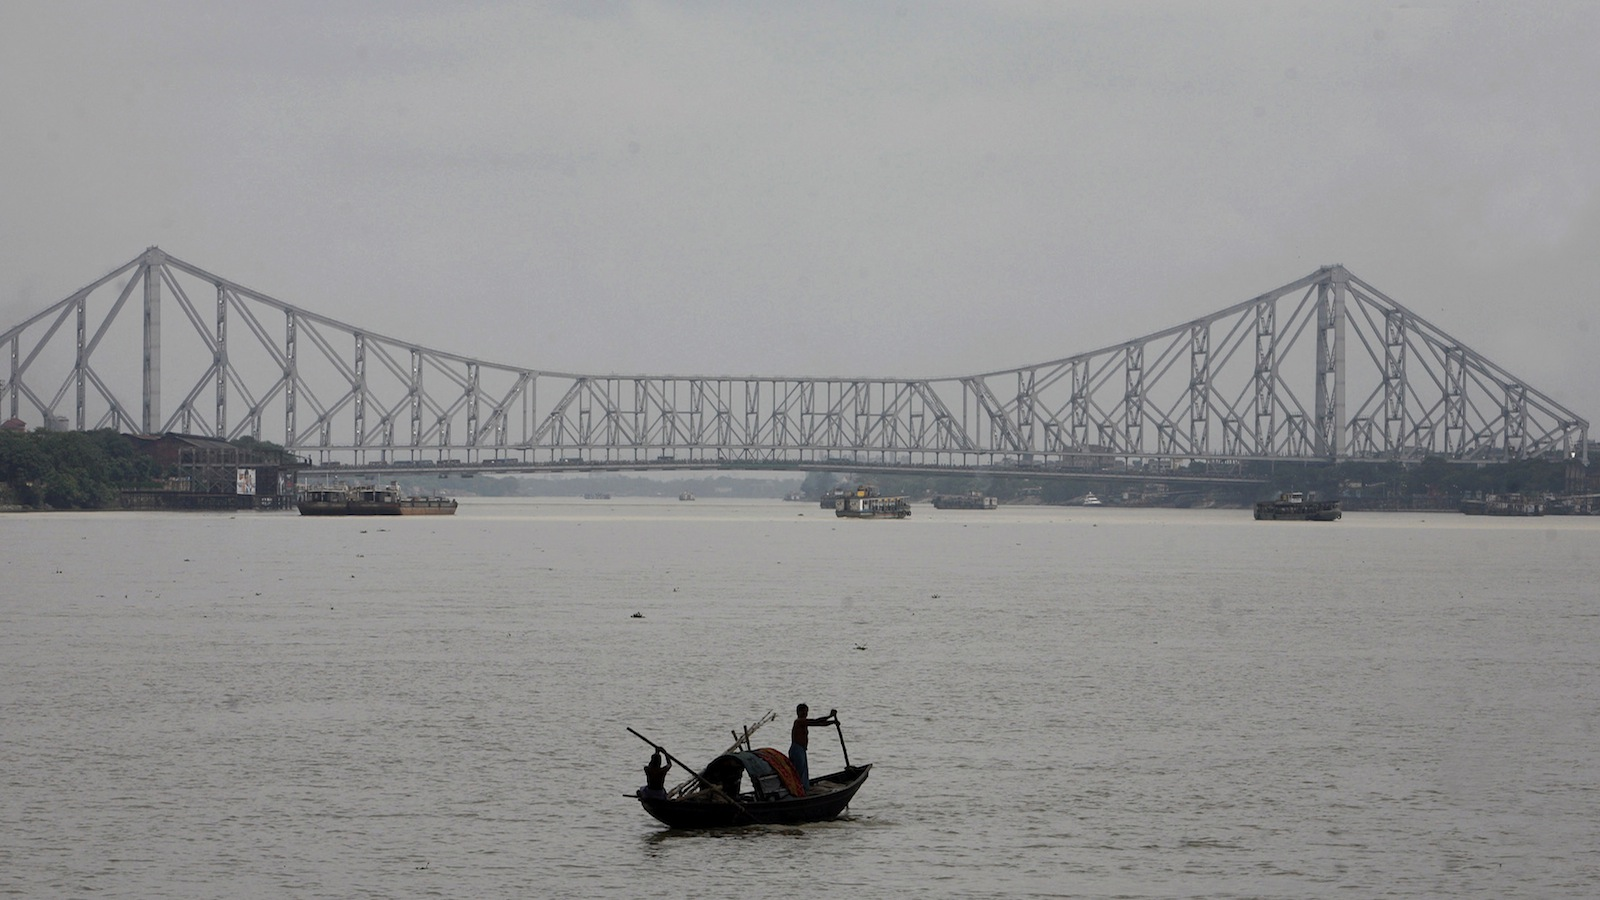 Fishermen row a boat on the Hooghly River against the backdrop of Howrah bridge in the eastern Indian city of Kolkata September 17, 2007. REUTERS/Parth Sanyal